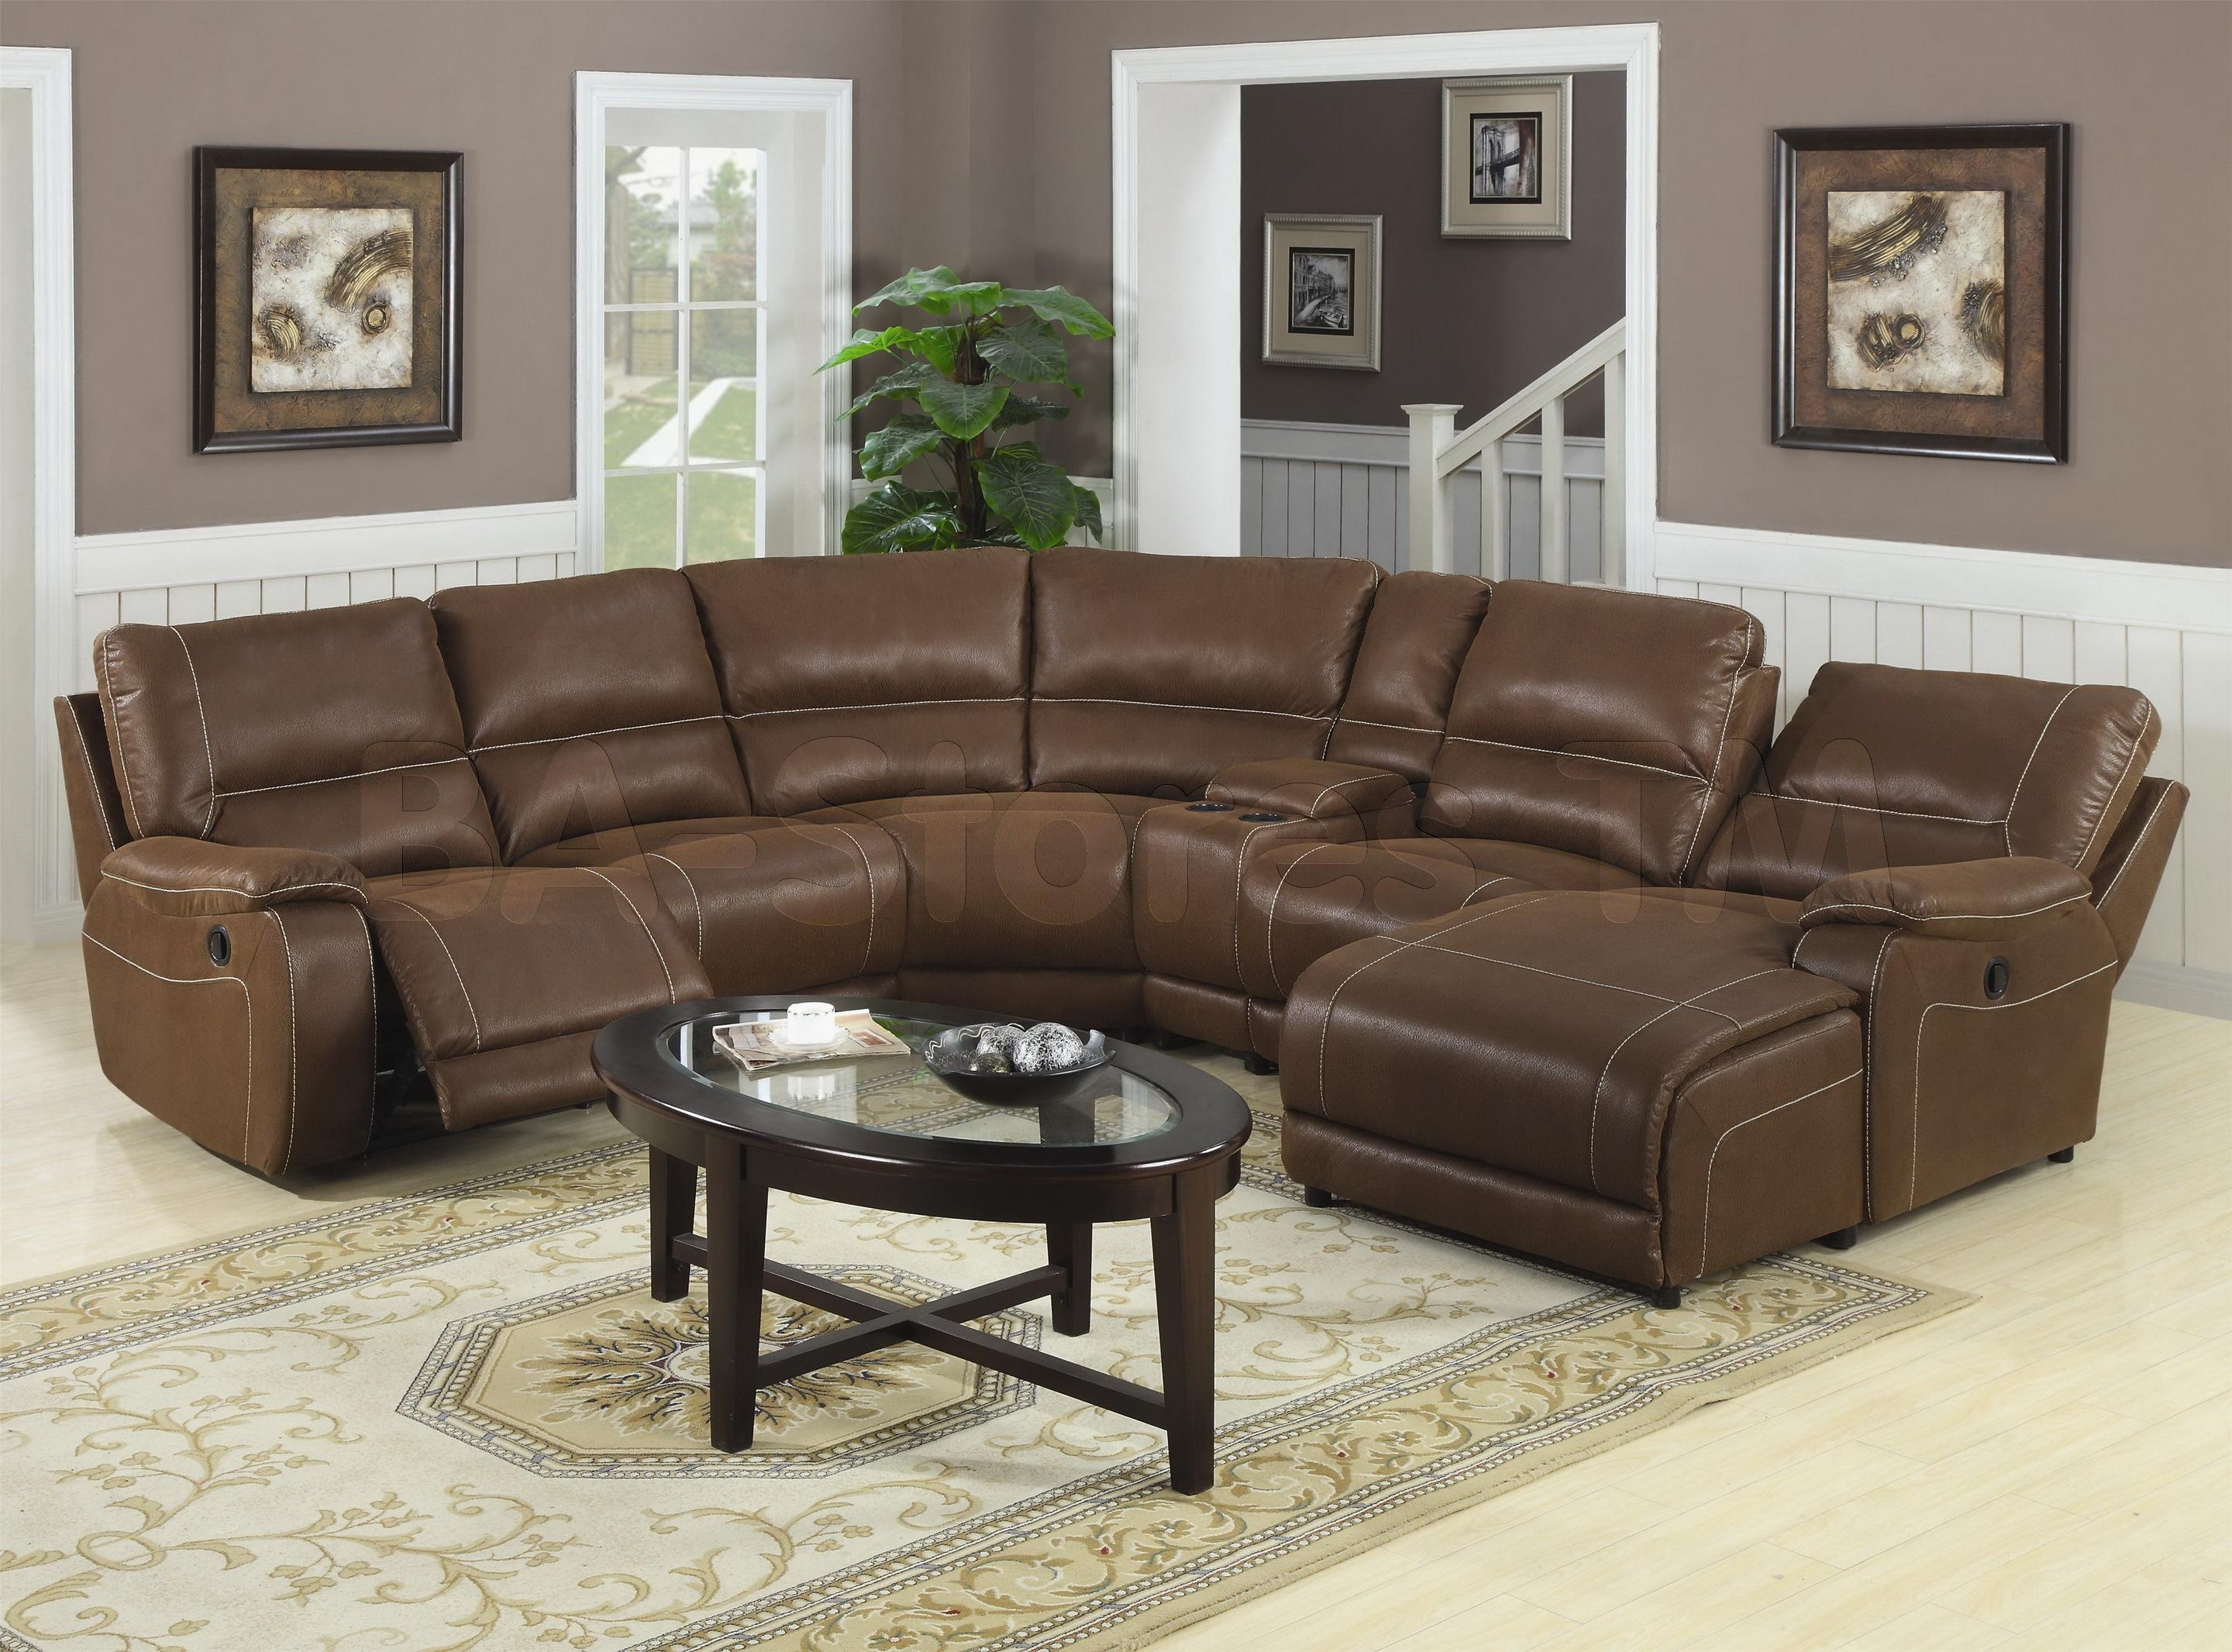 Round Sectional Sofa Leather | Tehranmix Decoration With Regard To Chocolate Brown Sectional With Chaise (View 10 of 15)